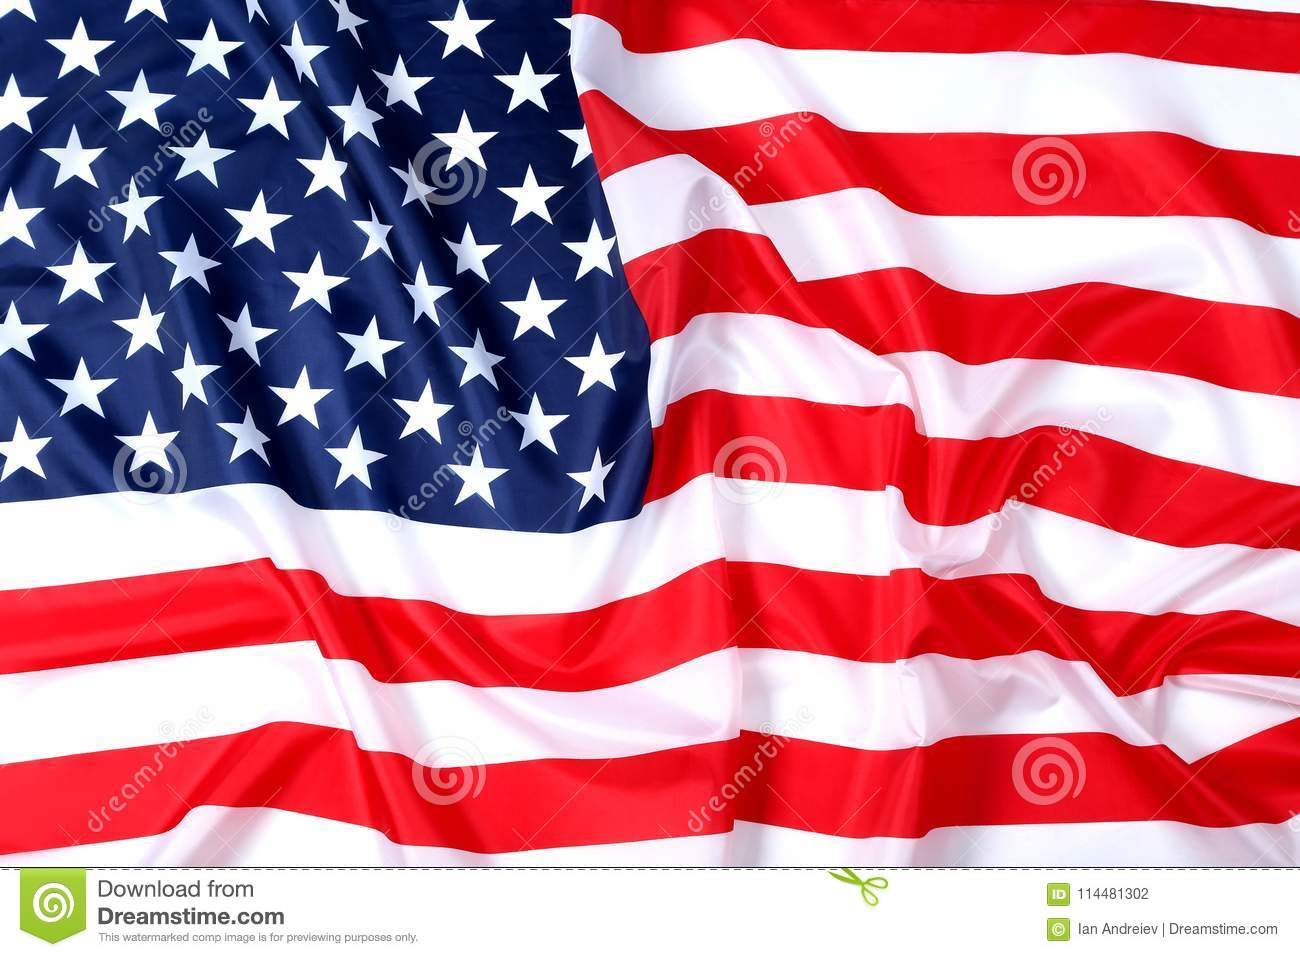 8bcdfc59bdee American flag stock photo. Image of stripes